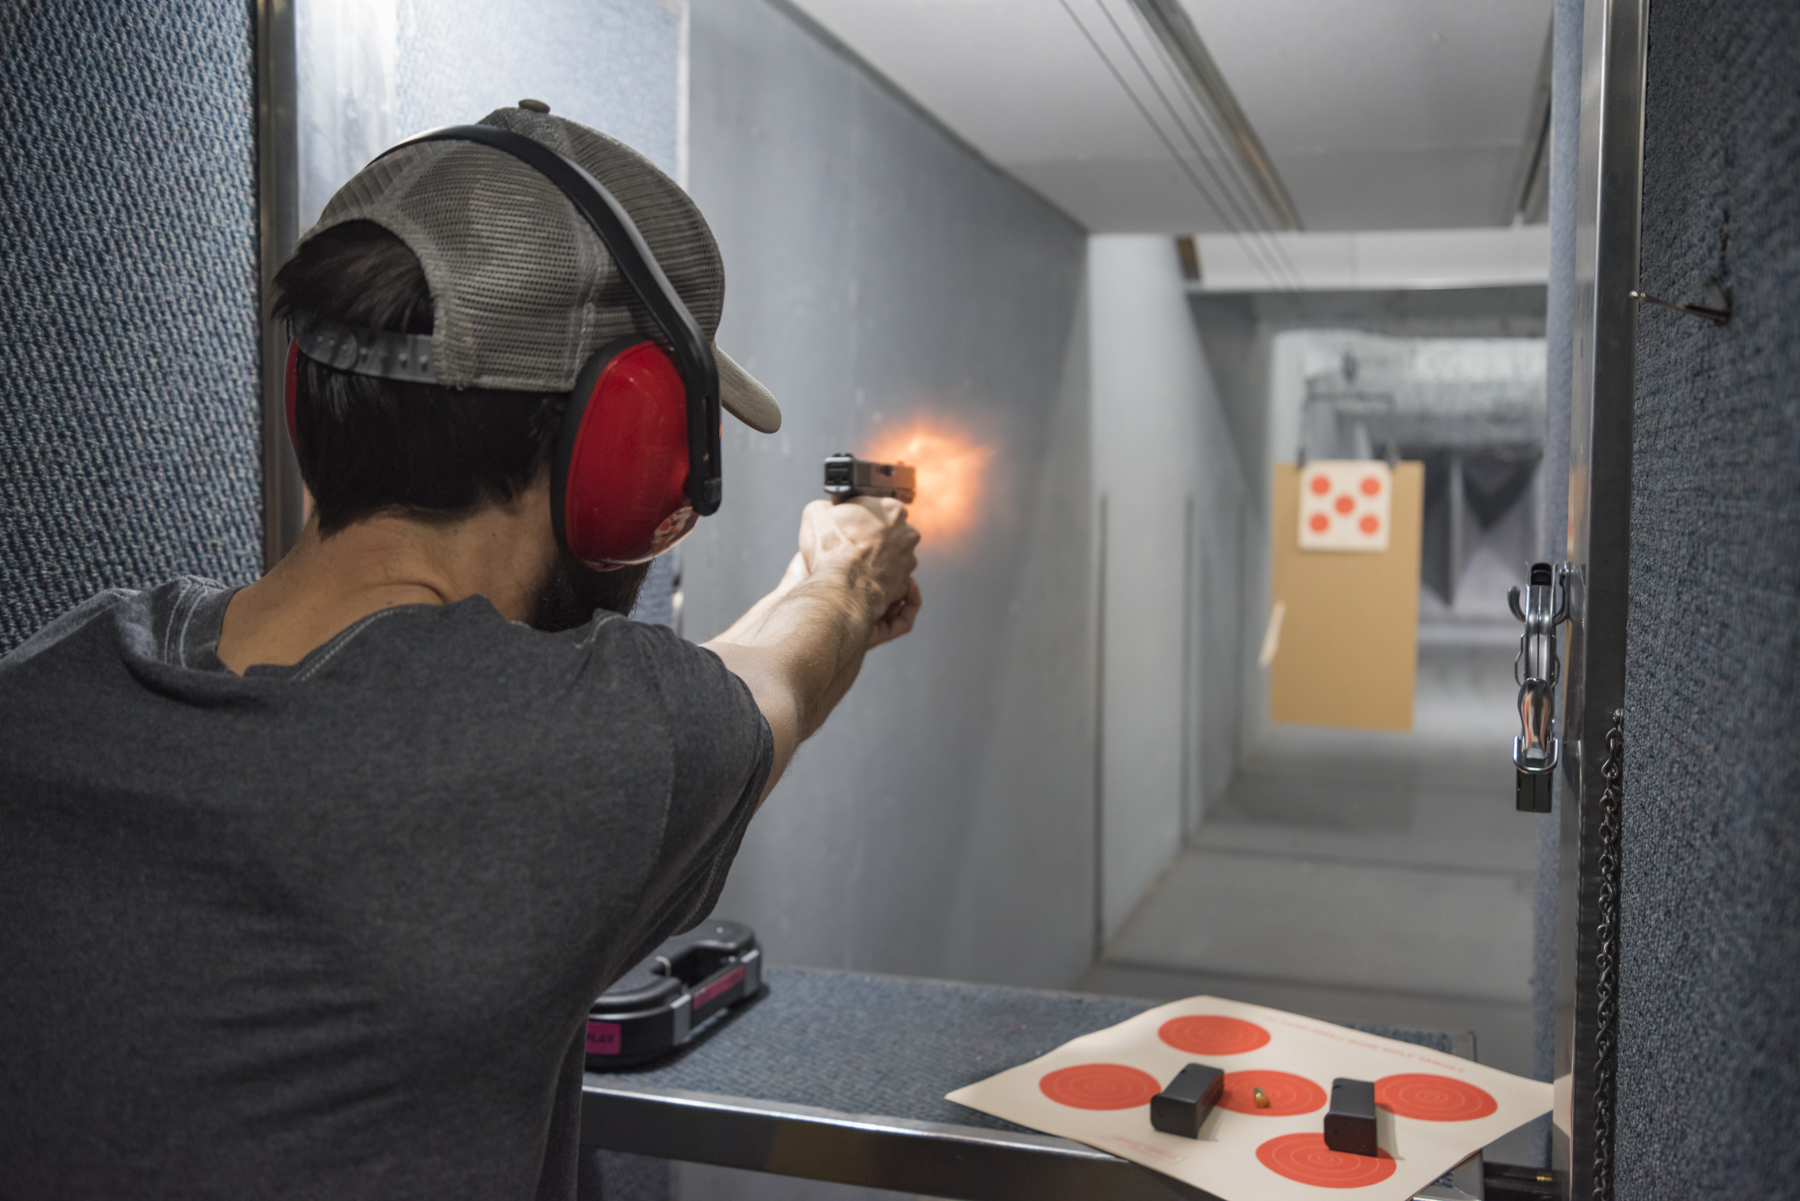 Article 004: Obtaining a CCW